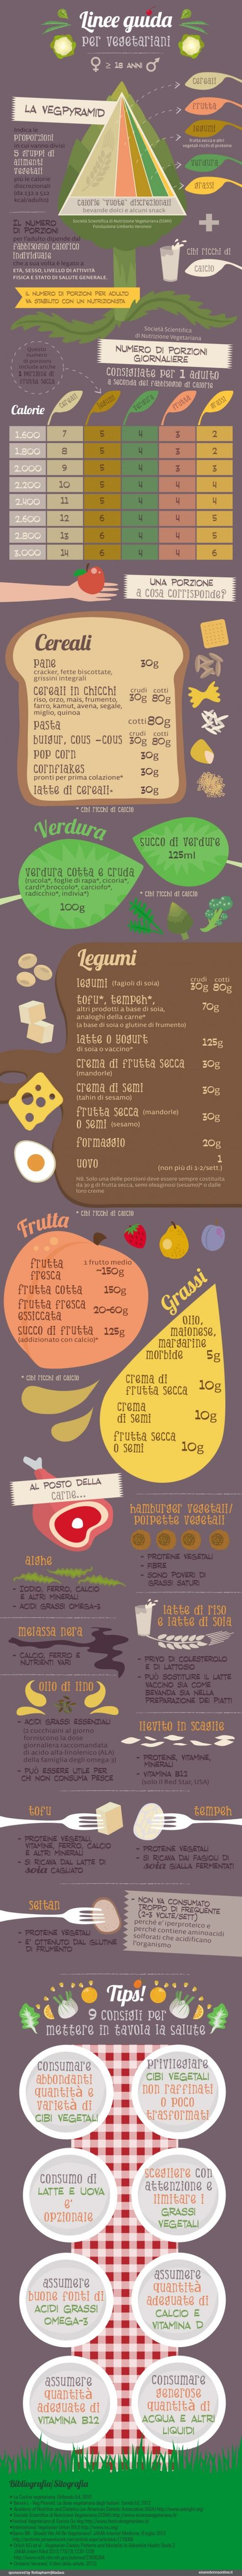 Le linee guida per una corretta alimentazione vegetariana-- infographics designed for esseredonnaonline.it- illustrated by Alice Kle Borghi, kleland.com